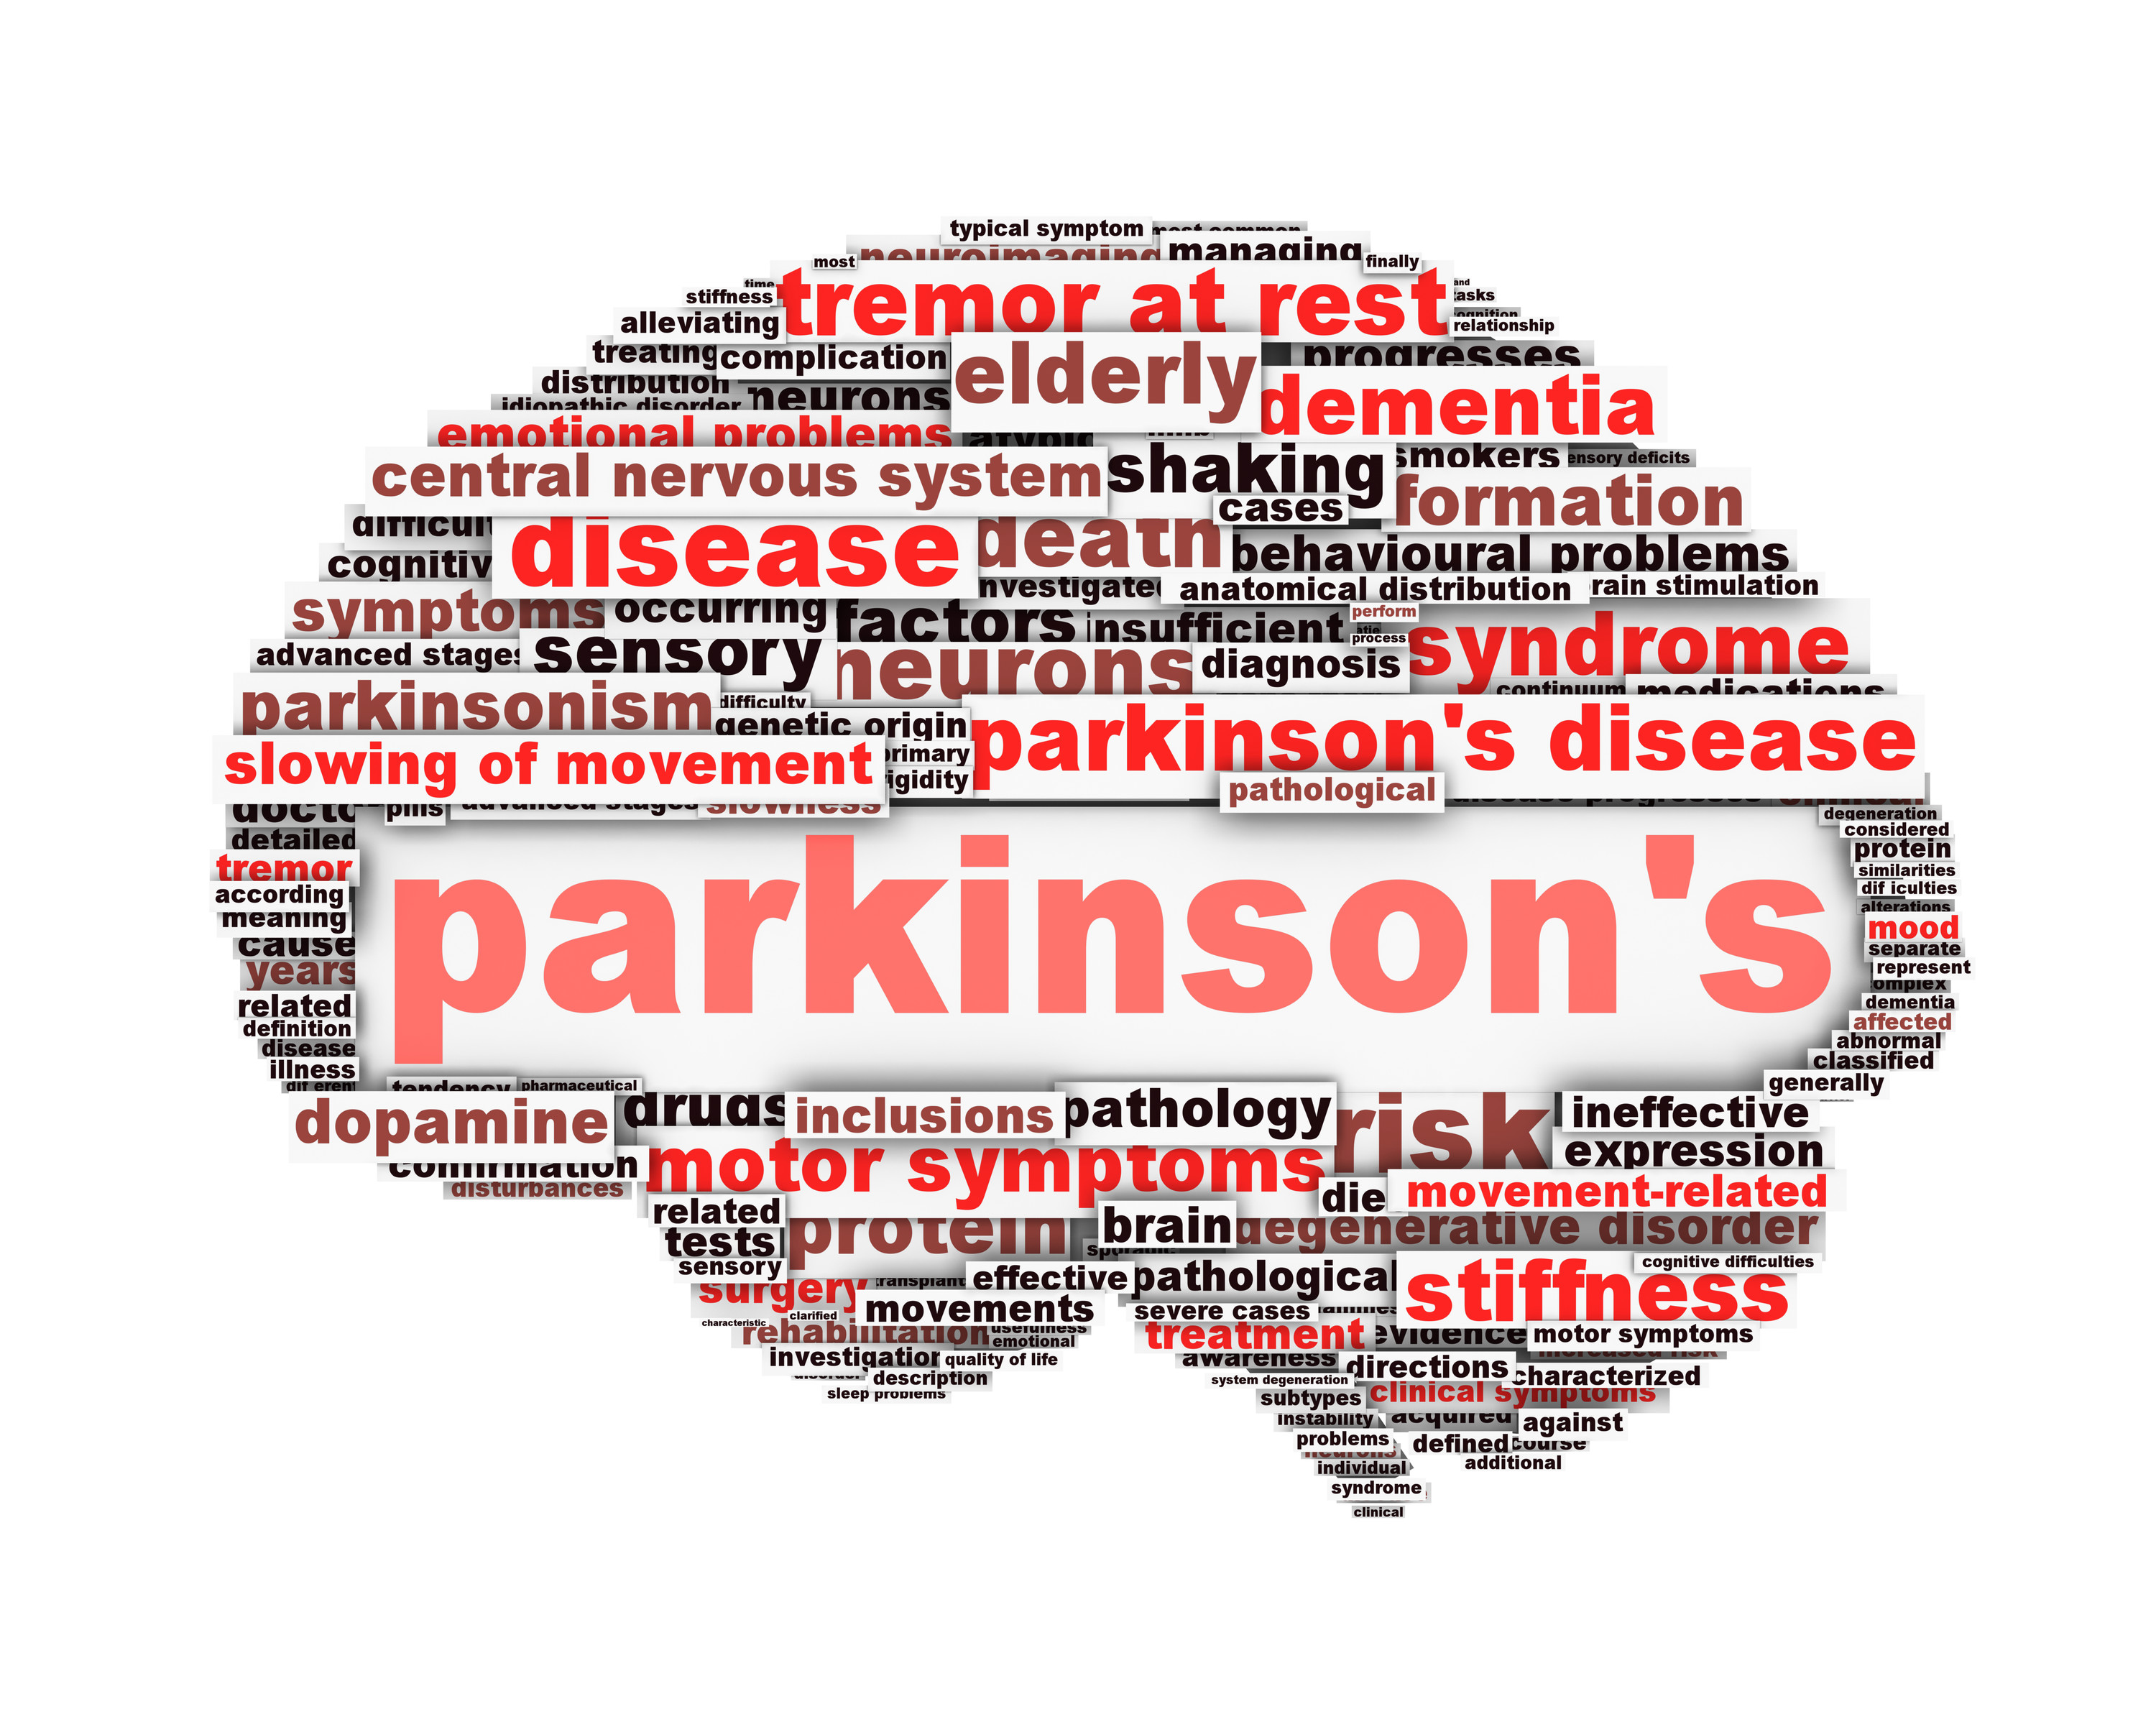 Speech and Swallowing Therapy to Help cope with Parkinson's Disease